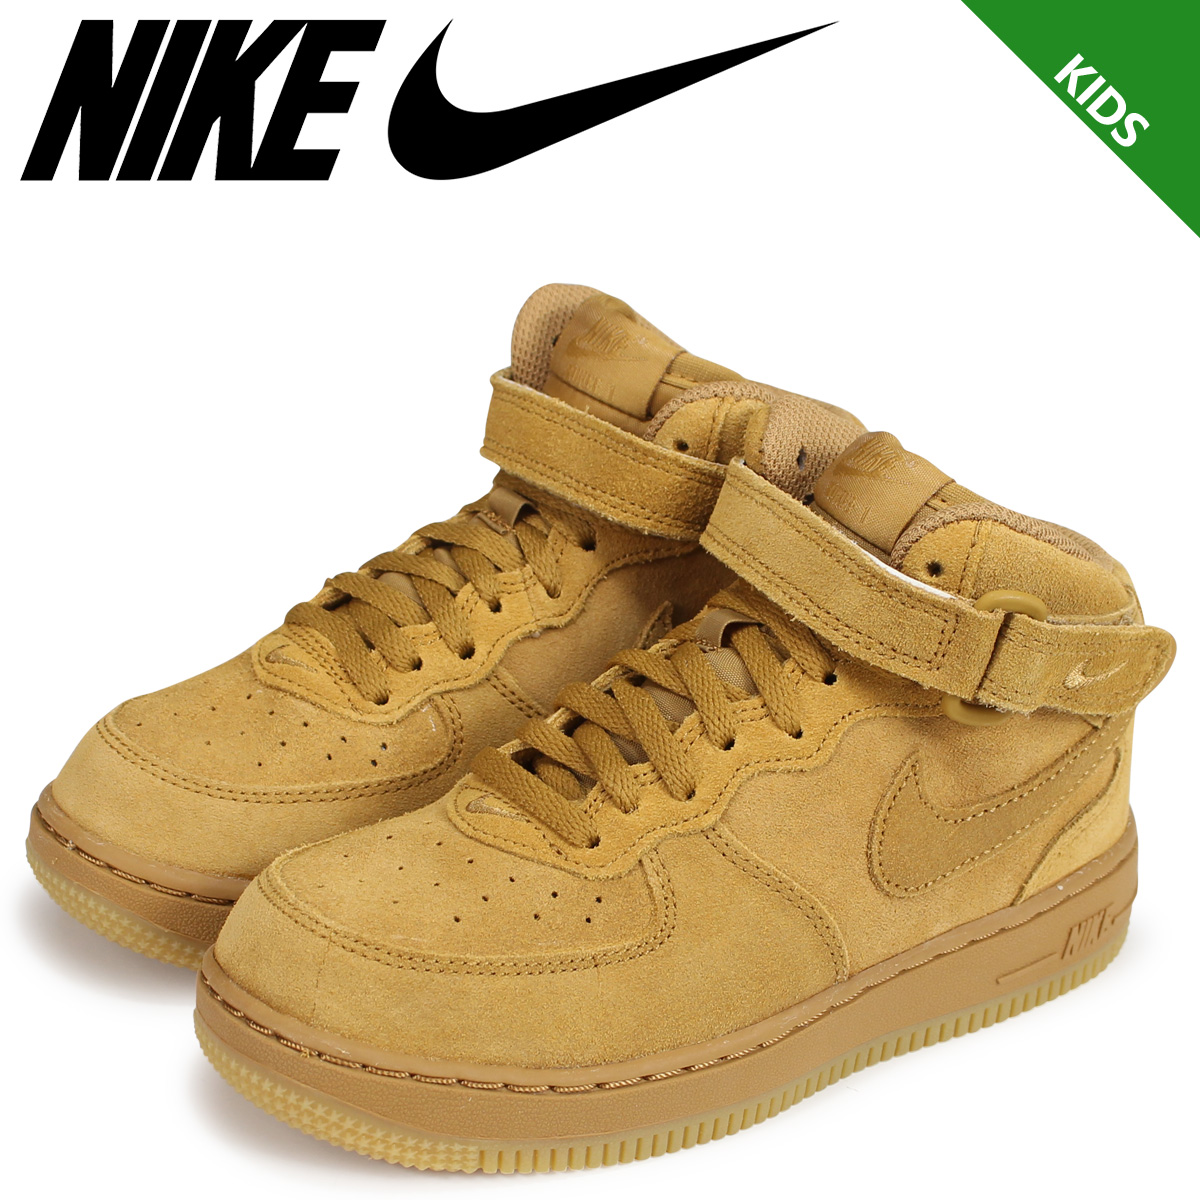 sports shoes bd973 56691 NIKE Nike air force 1 kids sneakers AIR FORCE 1 MID LV8 PS 859,337-701 ...